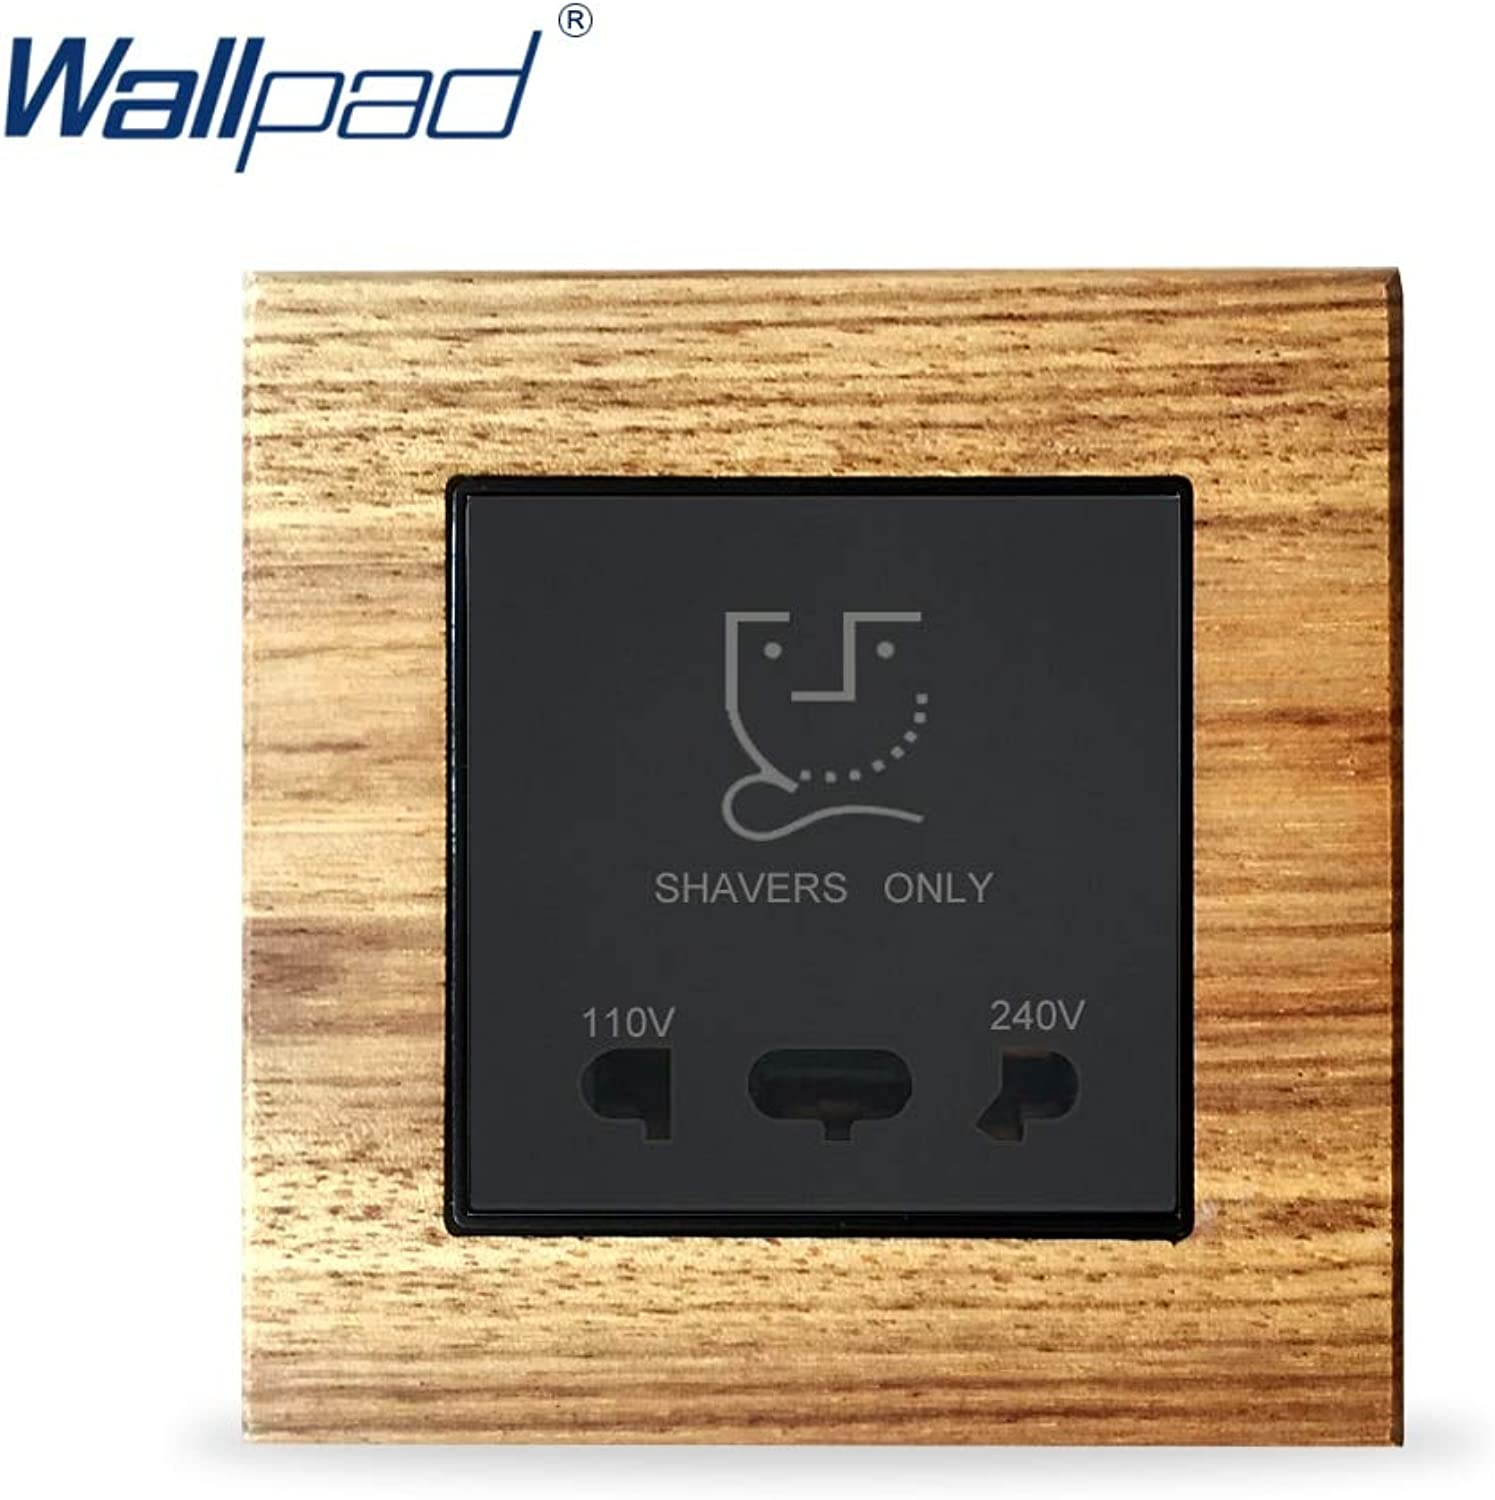 Shaver Socket Wallpad Luxury Wooden Panel Electric Wall Power Socket Electrical Outlets for Home